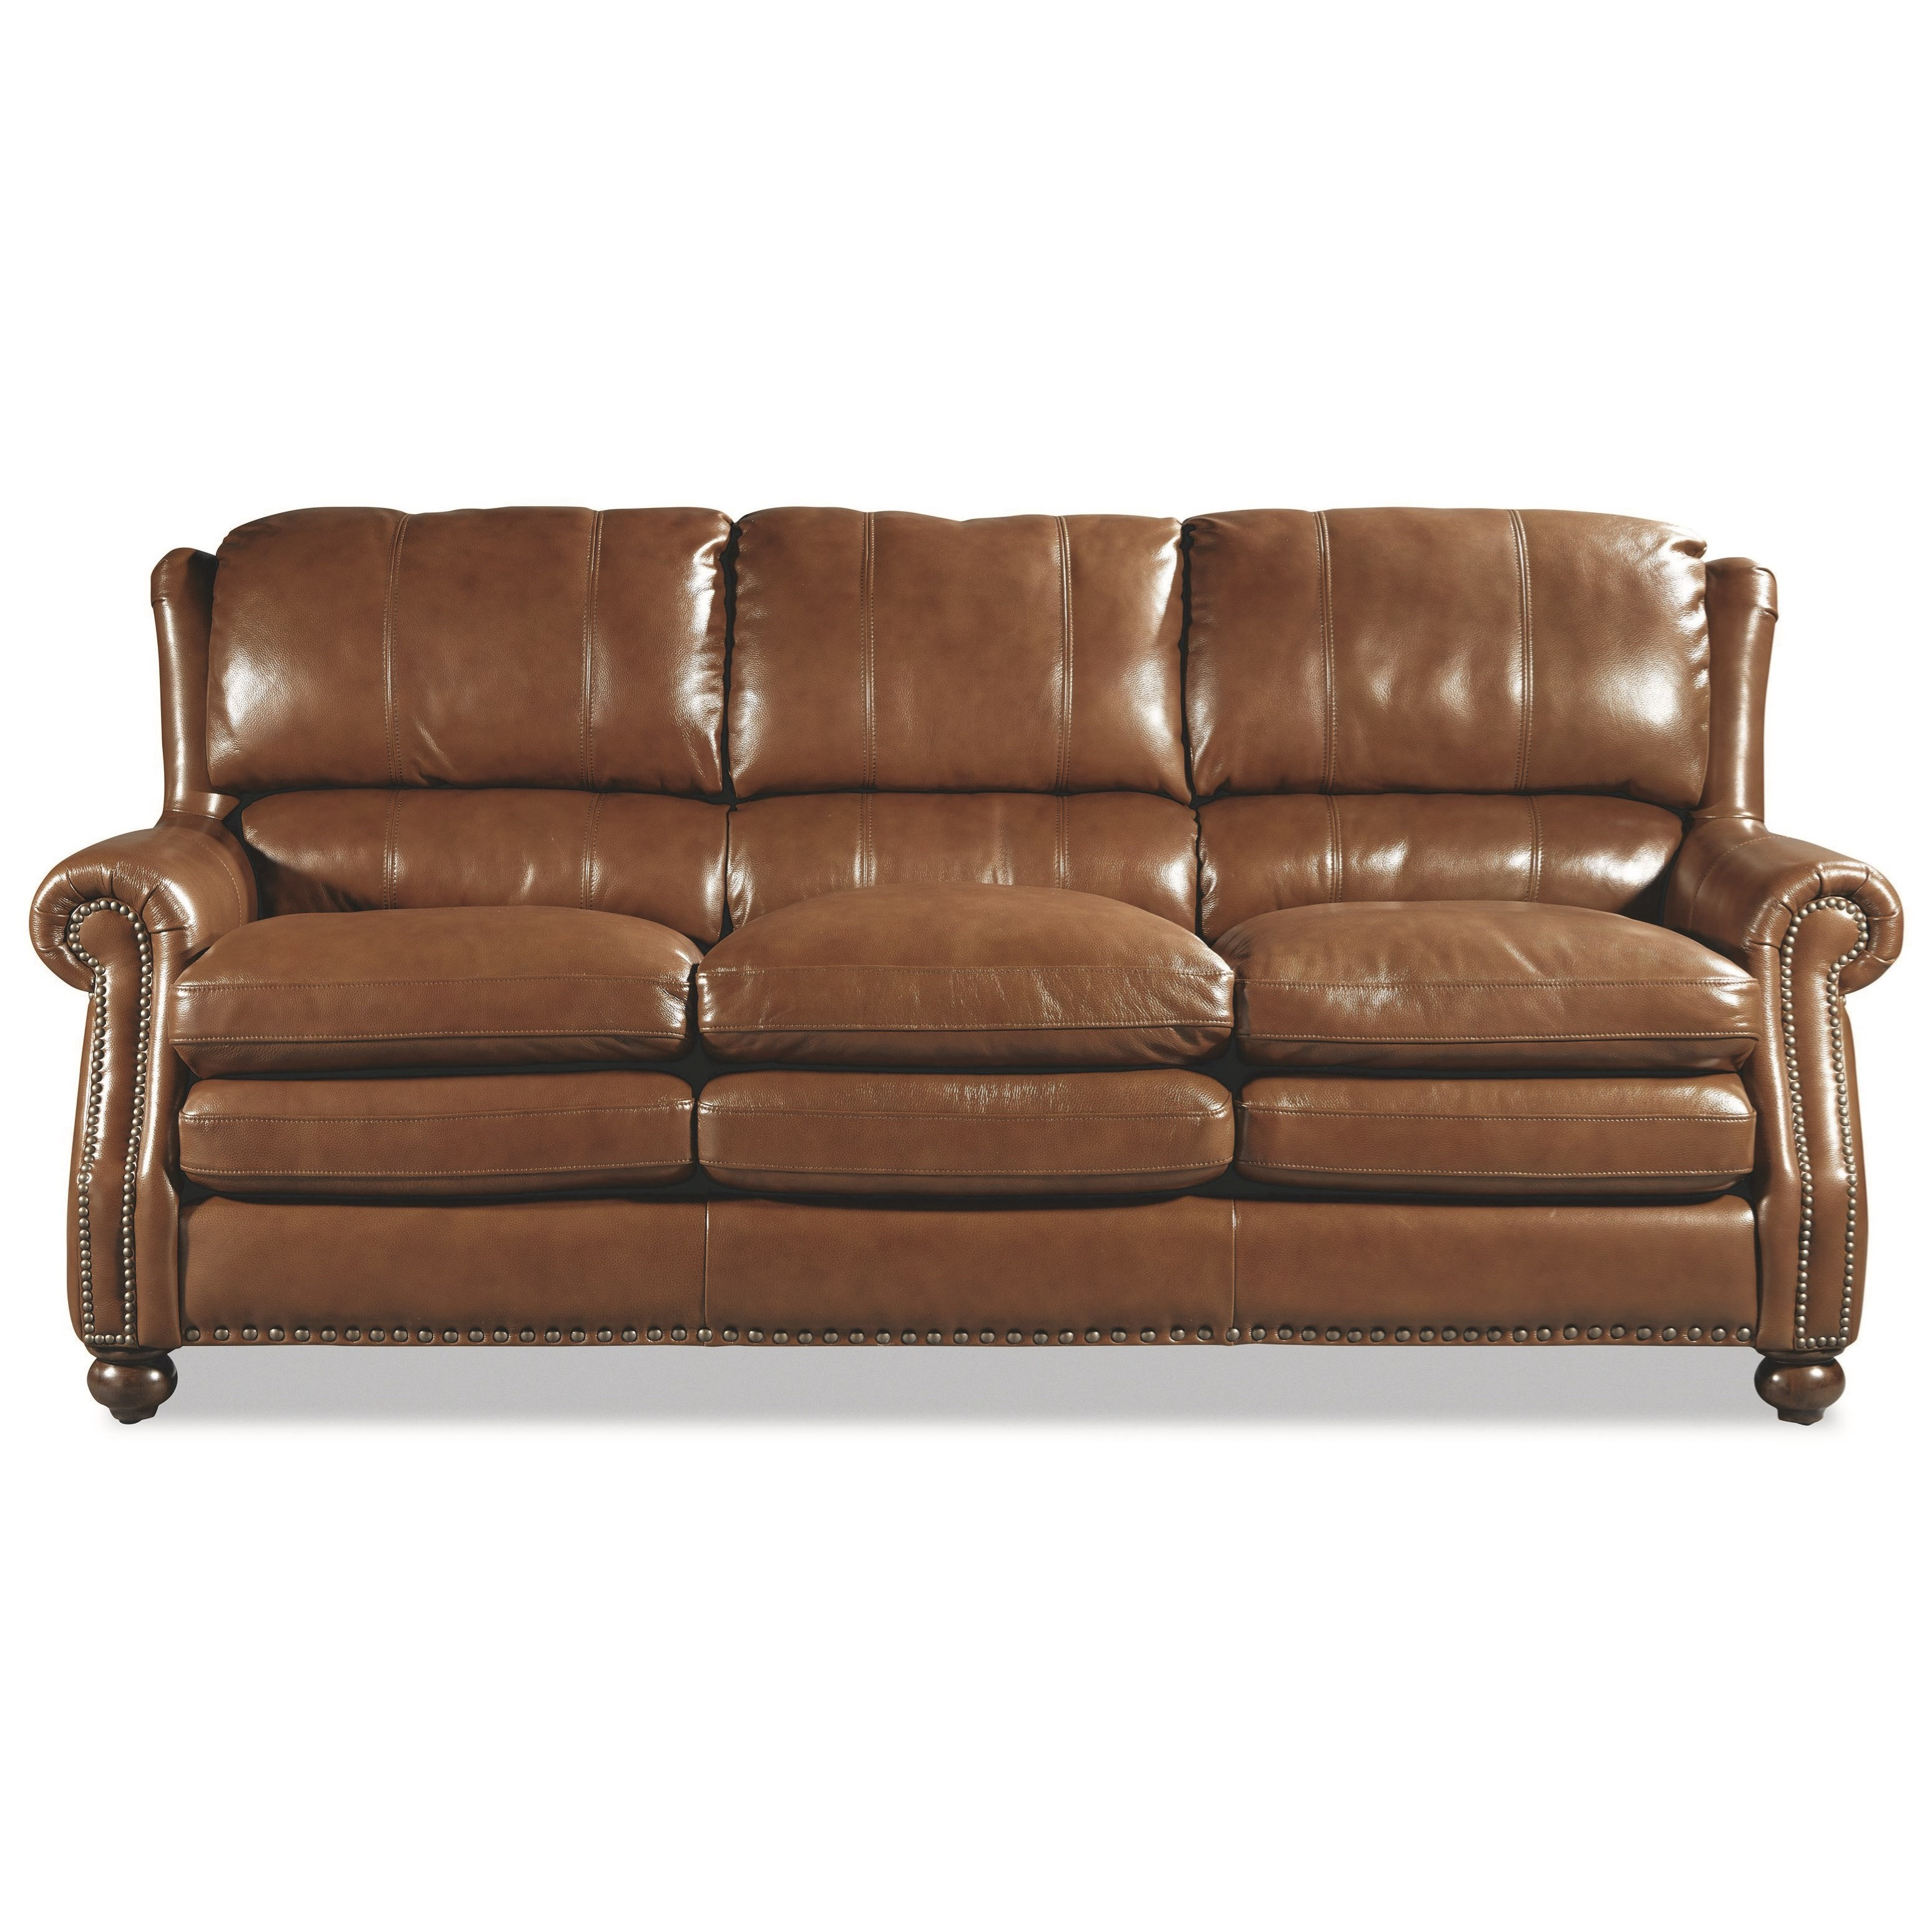 Italian Leather Sofa With Wood Trim: Traditional Leather Sofa With Bustle Back And Nailhead